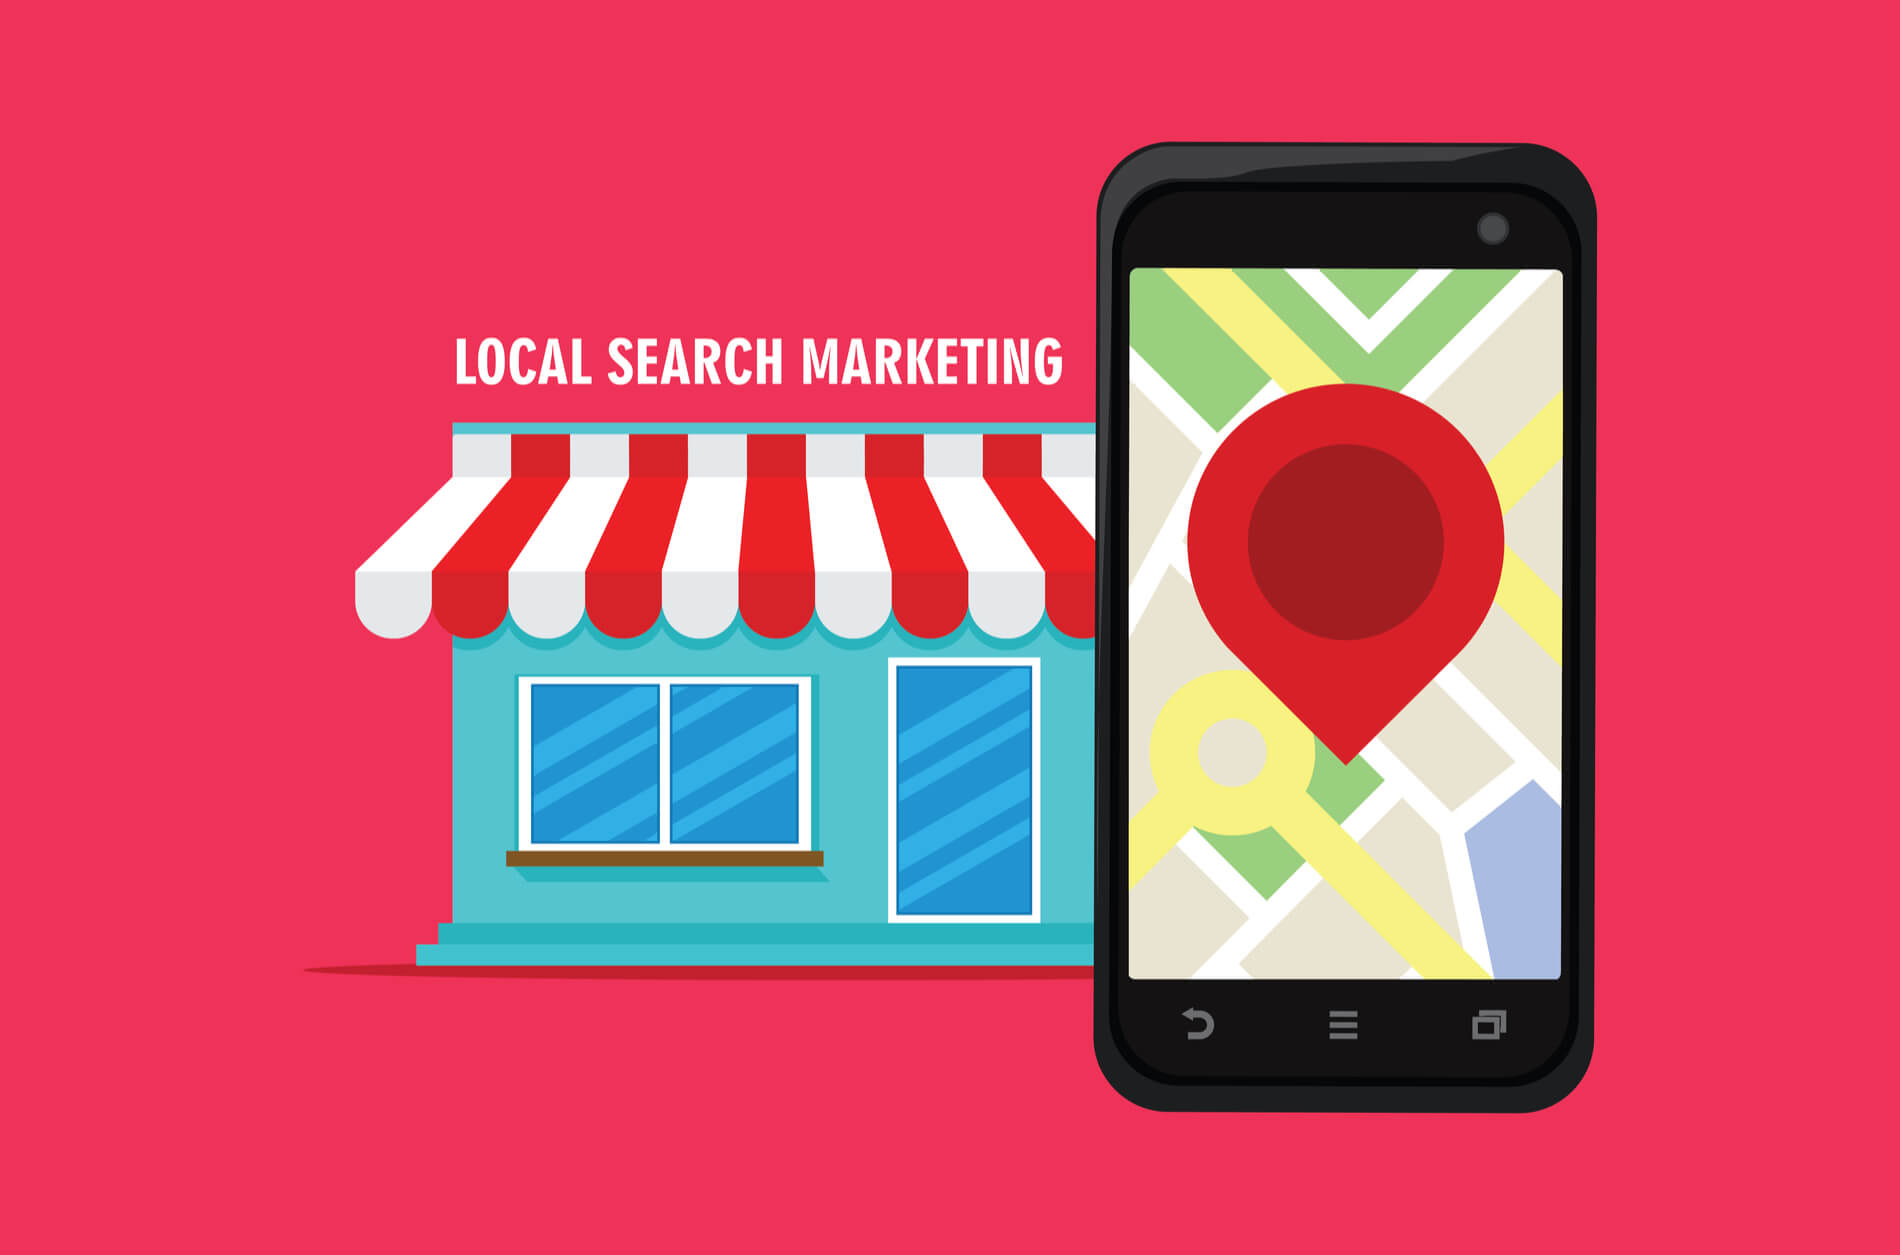 How to Fix 5 CommonLocal SearchMistakes thatHarm your Dental Marketing